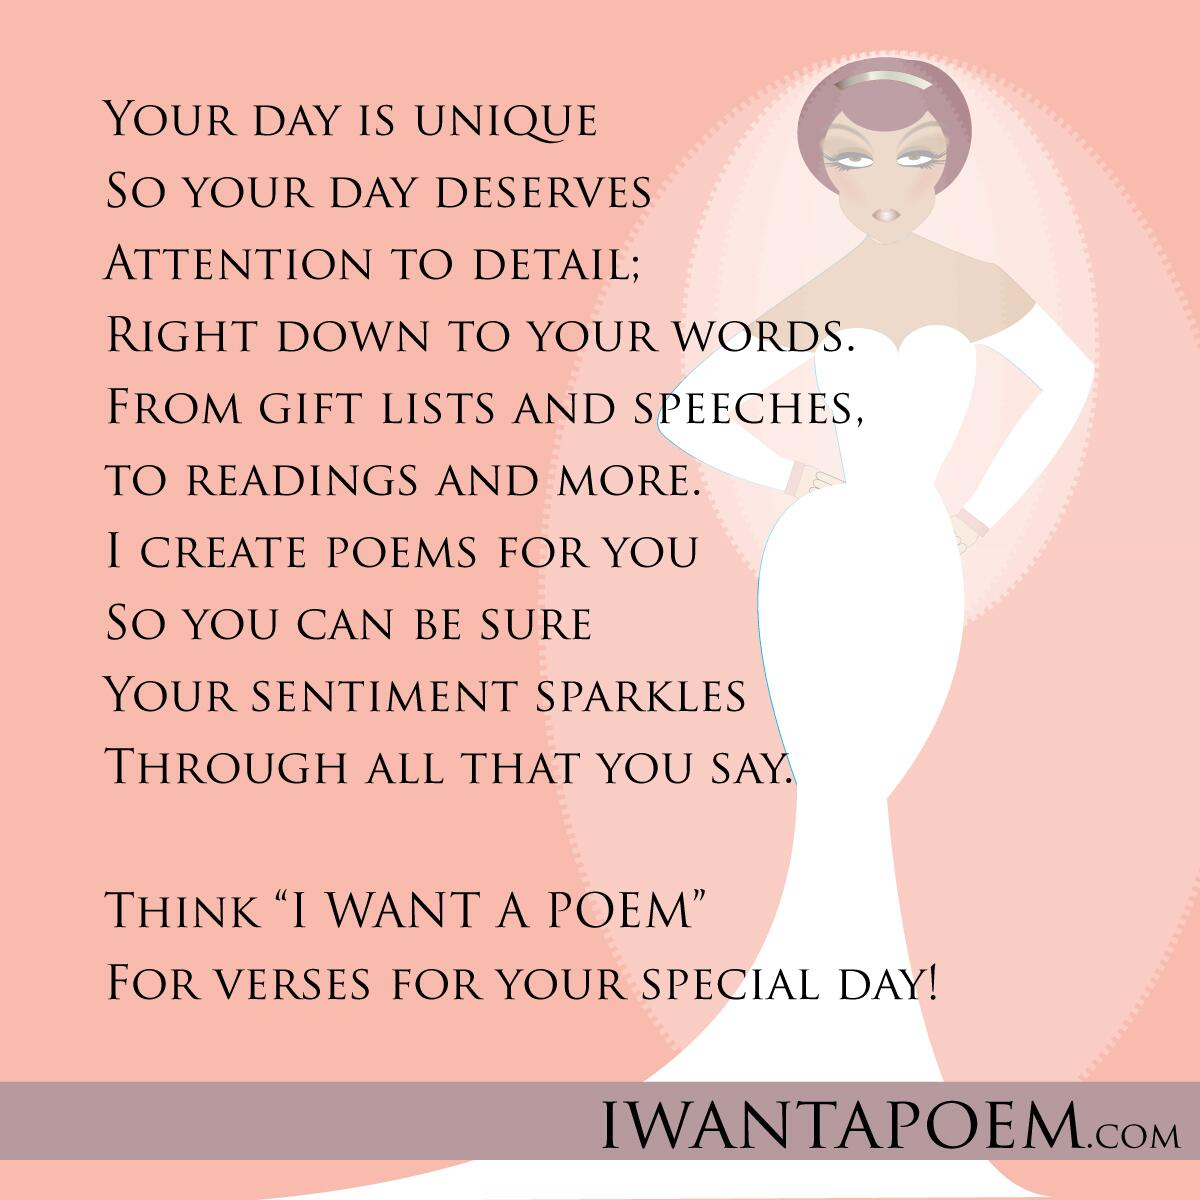 Amy Ms Moem On Twitter I Write Wedding Poems For Your Readings Best Man Speeches Gifts